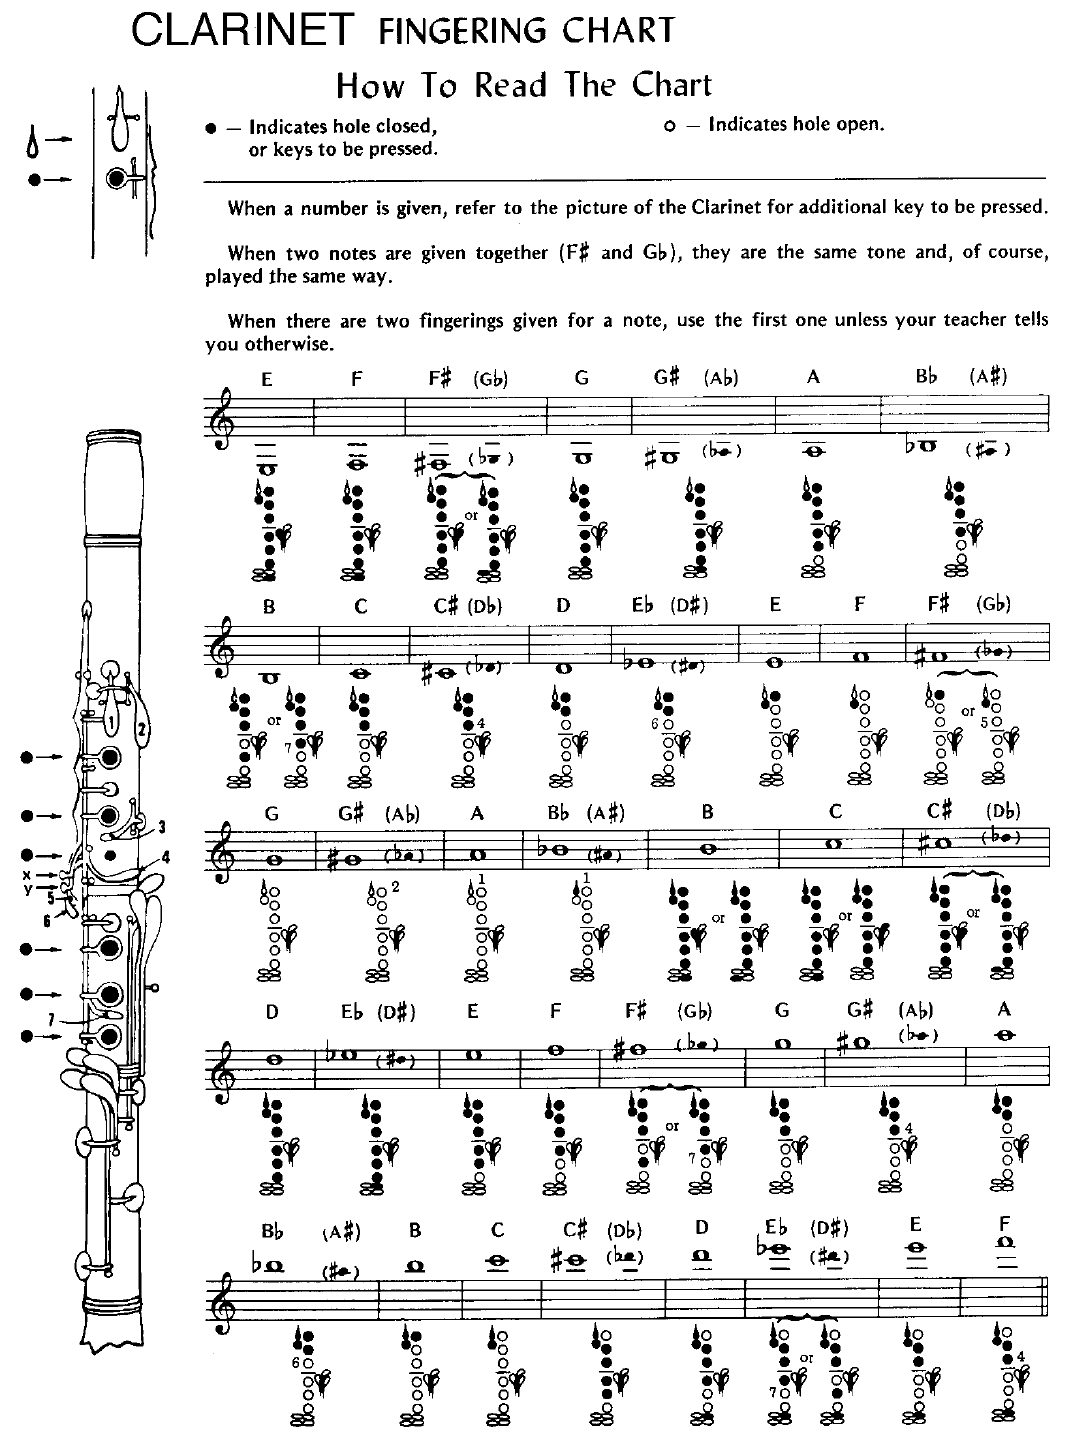 Free Clarinet Fingering Chart Pdf 69kb 2 Page S